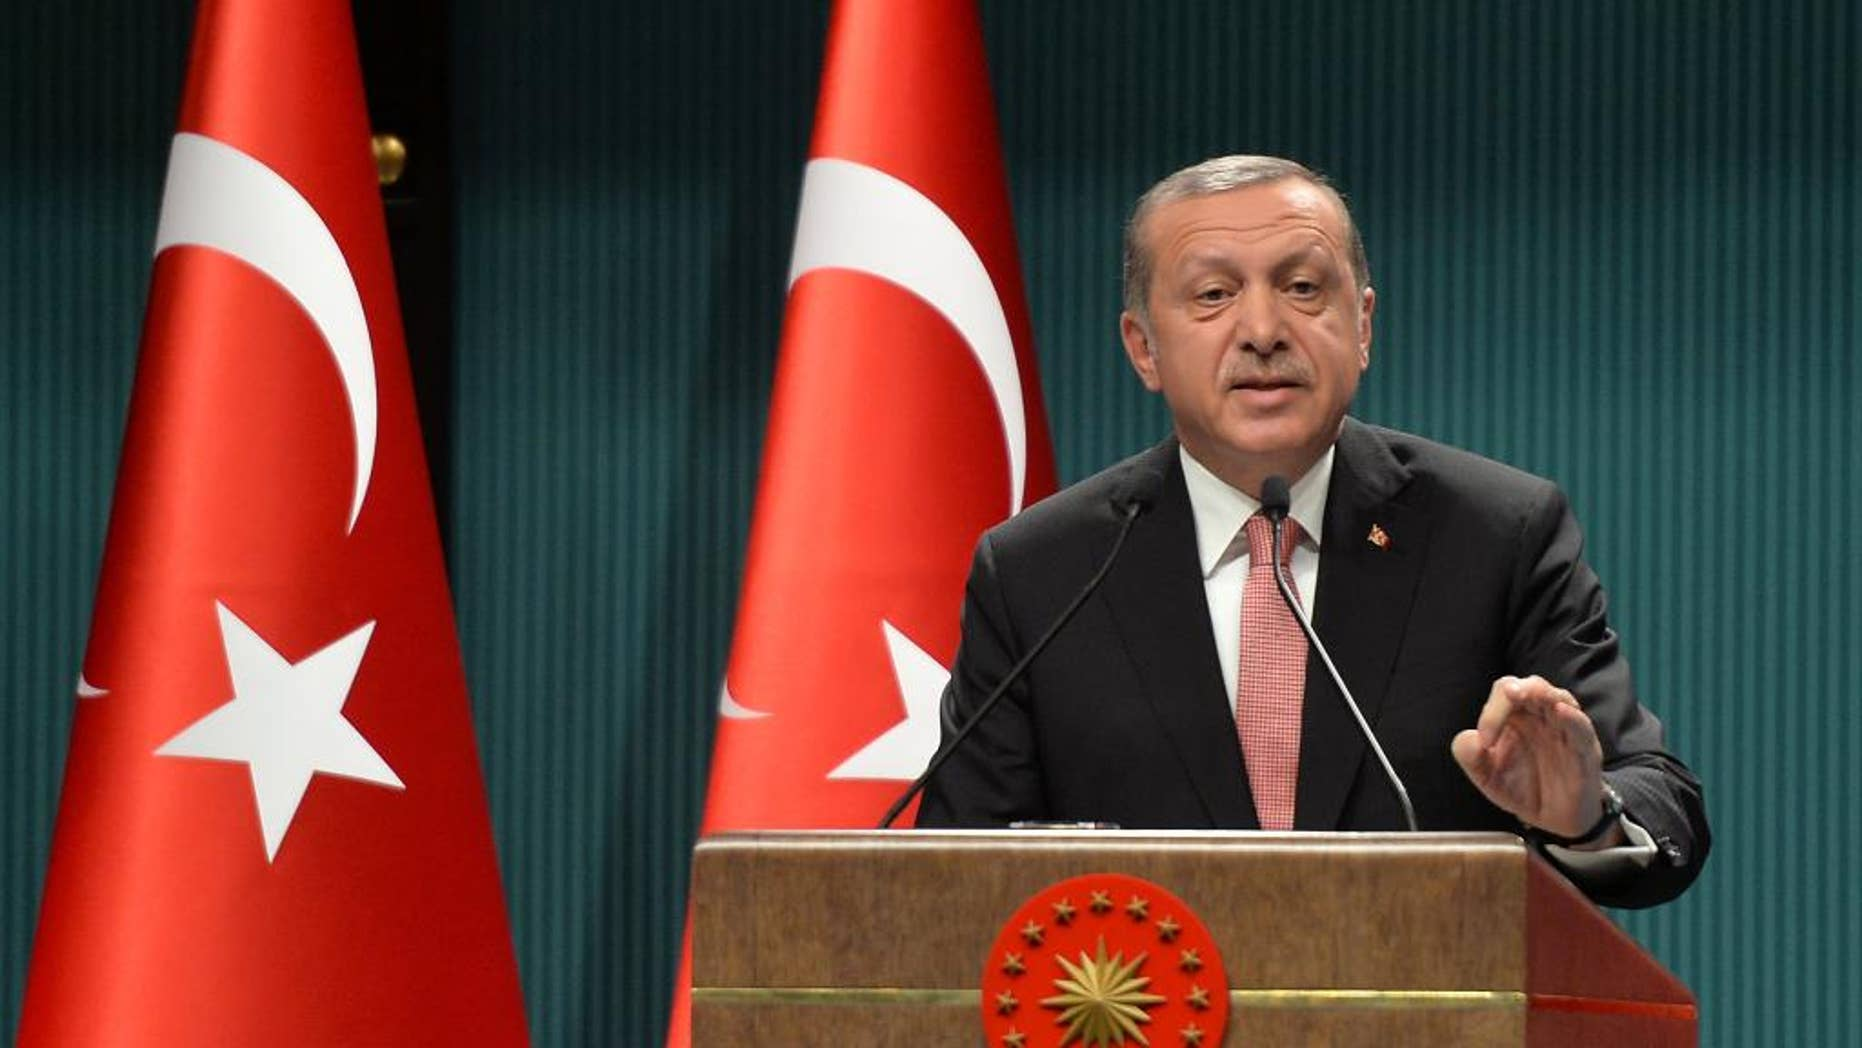 FILE - This is a Wednesday, July 20, 2016   file photo of Turkey's President Recep Tayyip Erdogan as he speaks after an emergency meeting of the government in Ankara, Turkey. Erdogan hinted on Thursday  Sept. 29, 2016 that the three-month state of emergency declared following the failed July 15 coup could be extended to over a year, a day after the national security council recommended it be extended for another three months.  (AP Photo/File)